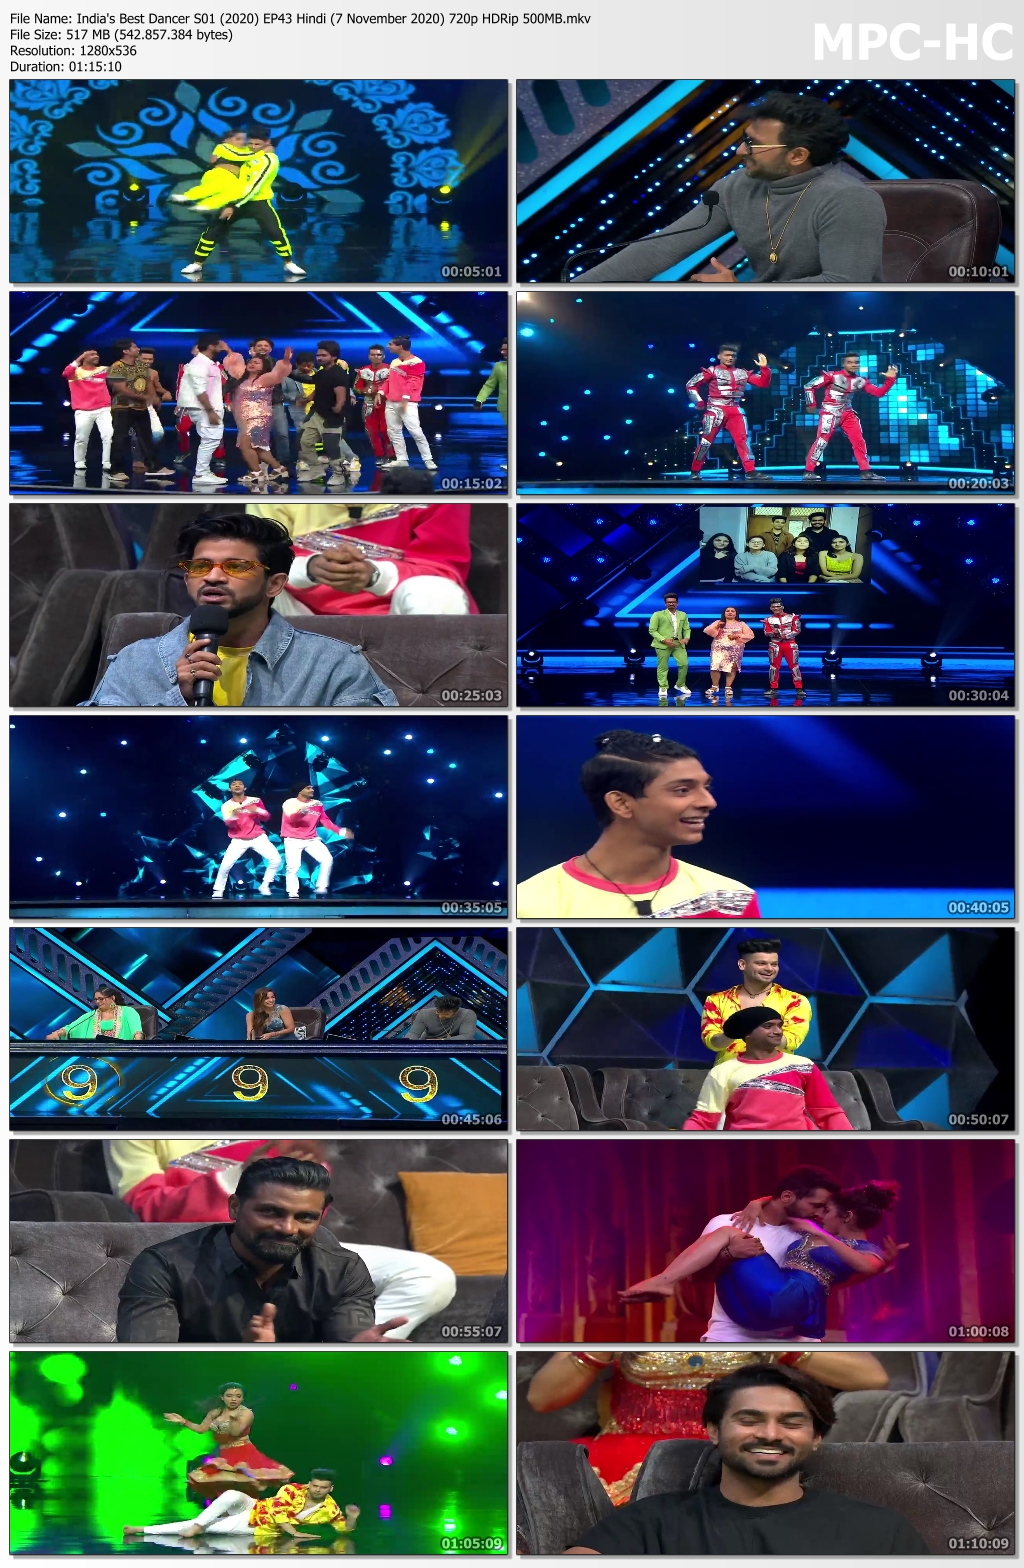 India-s-Best-Dancer-S01-2020-EP43-Hindi-7-November-2020-720p-HDRip-500-MB-mkv-thumbs